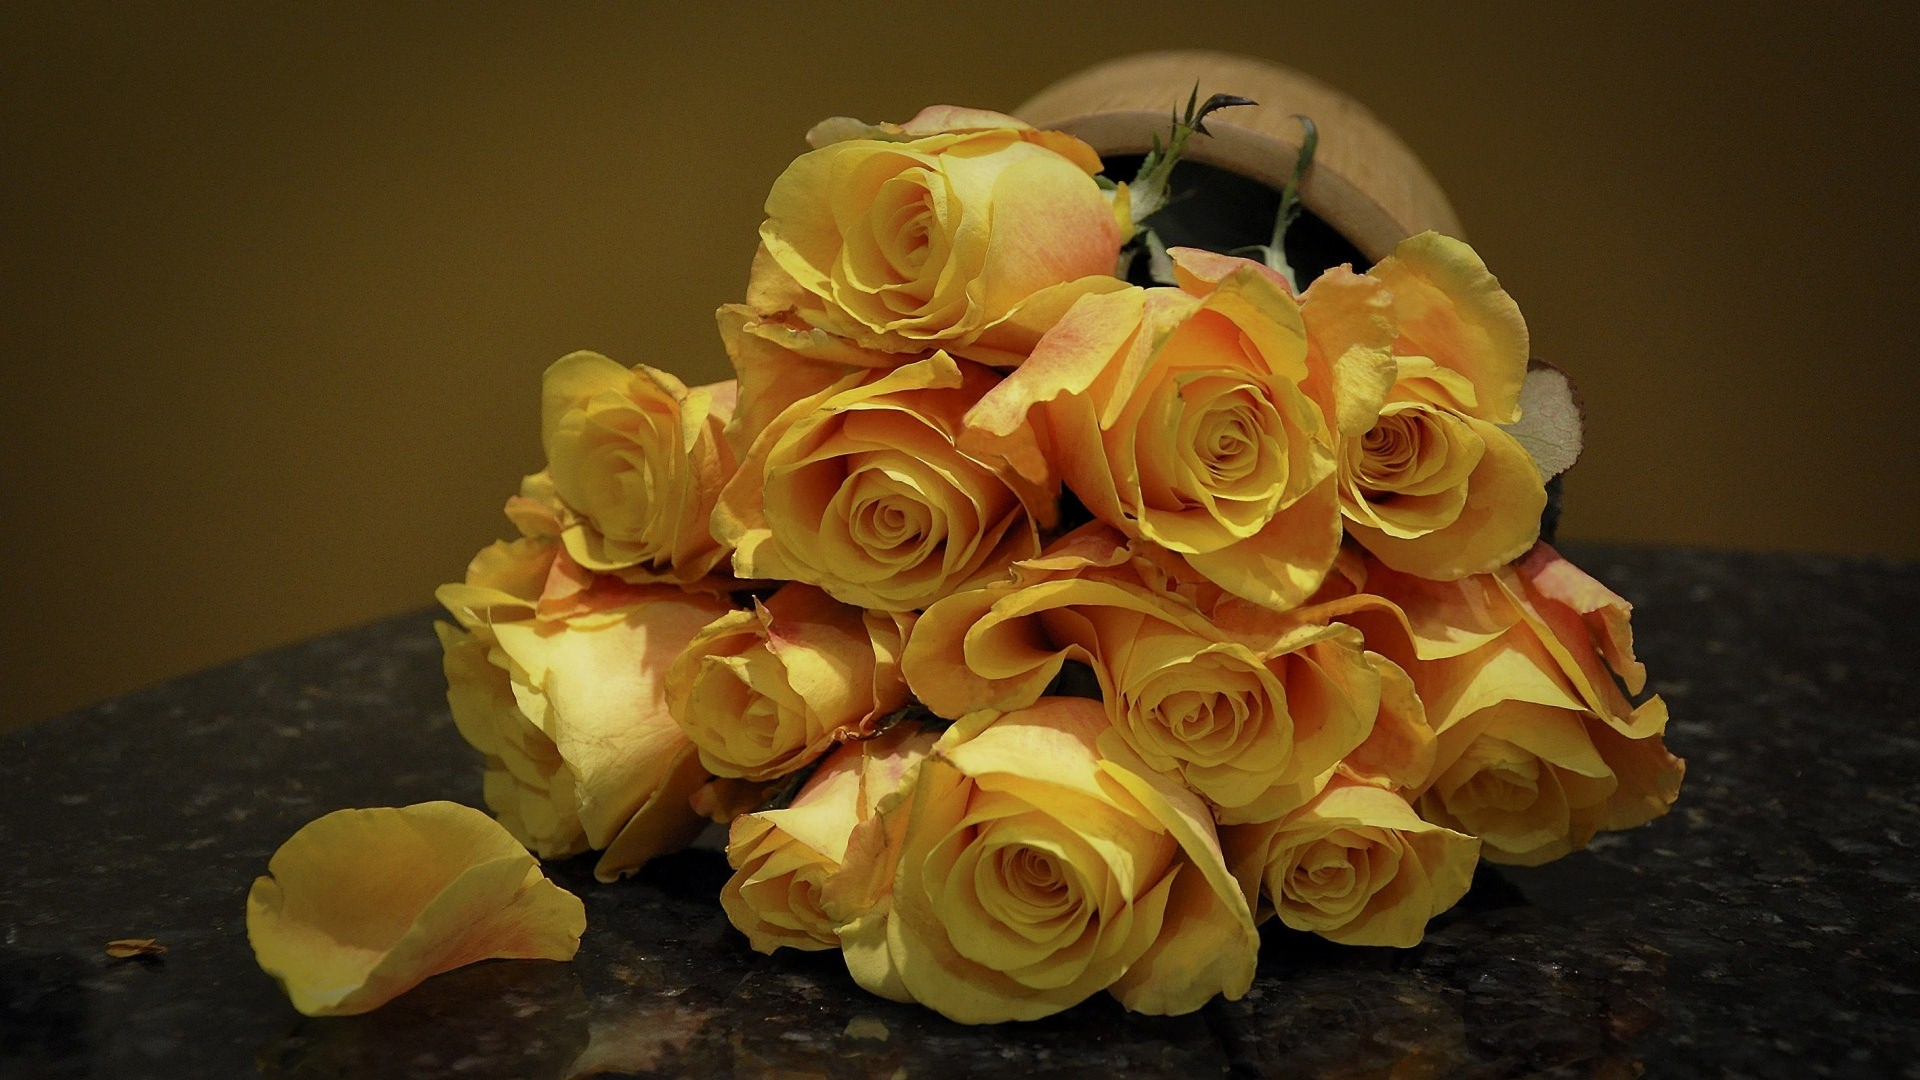 Yellow Rose Bouquet Wallpaper